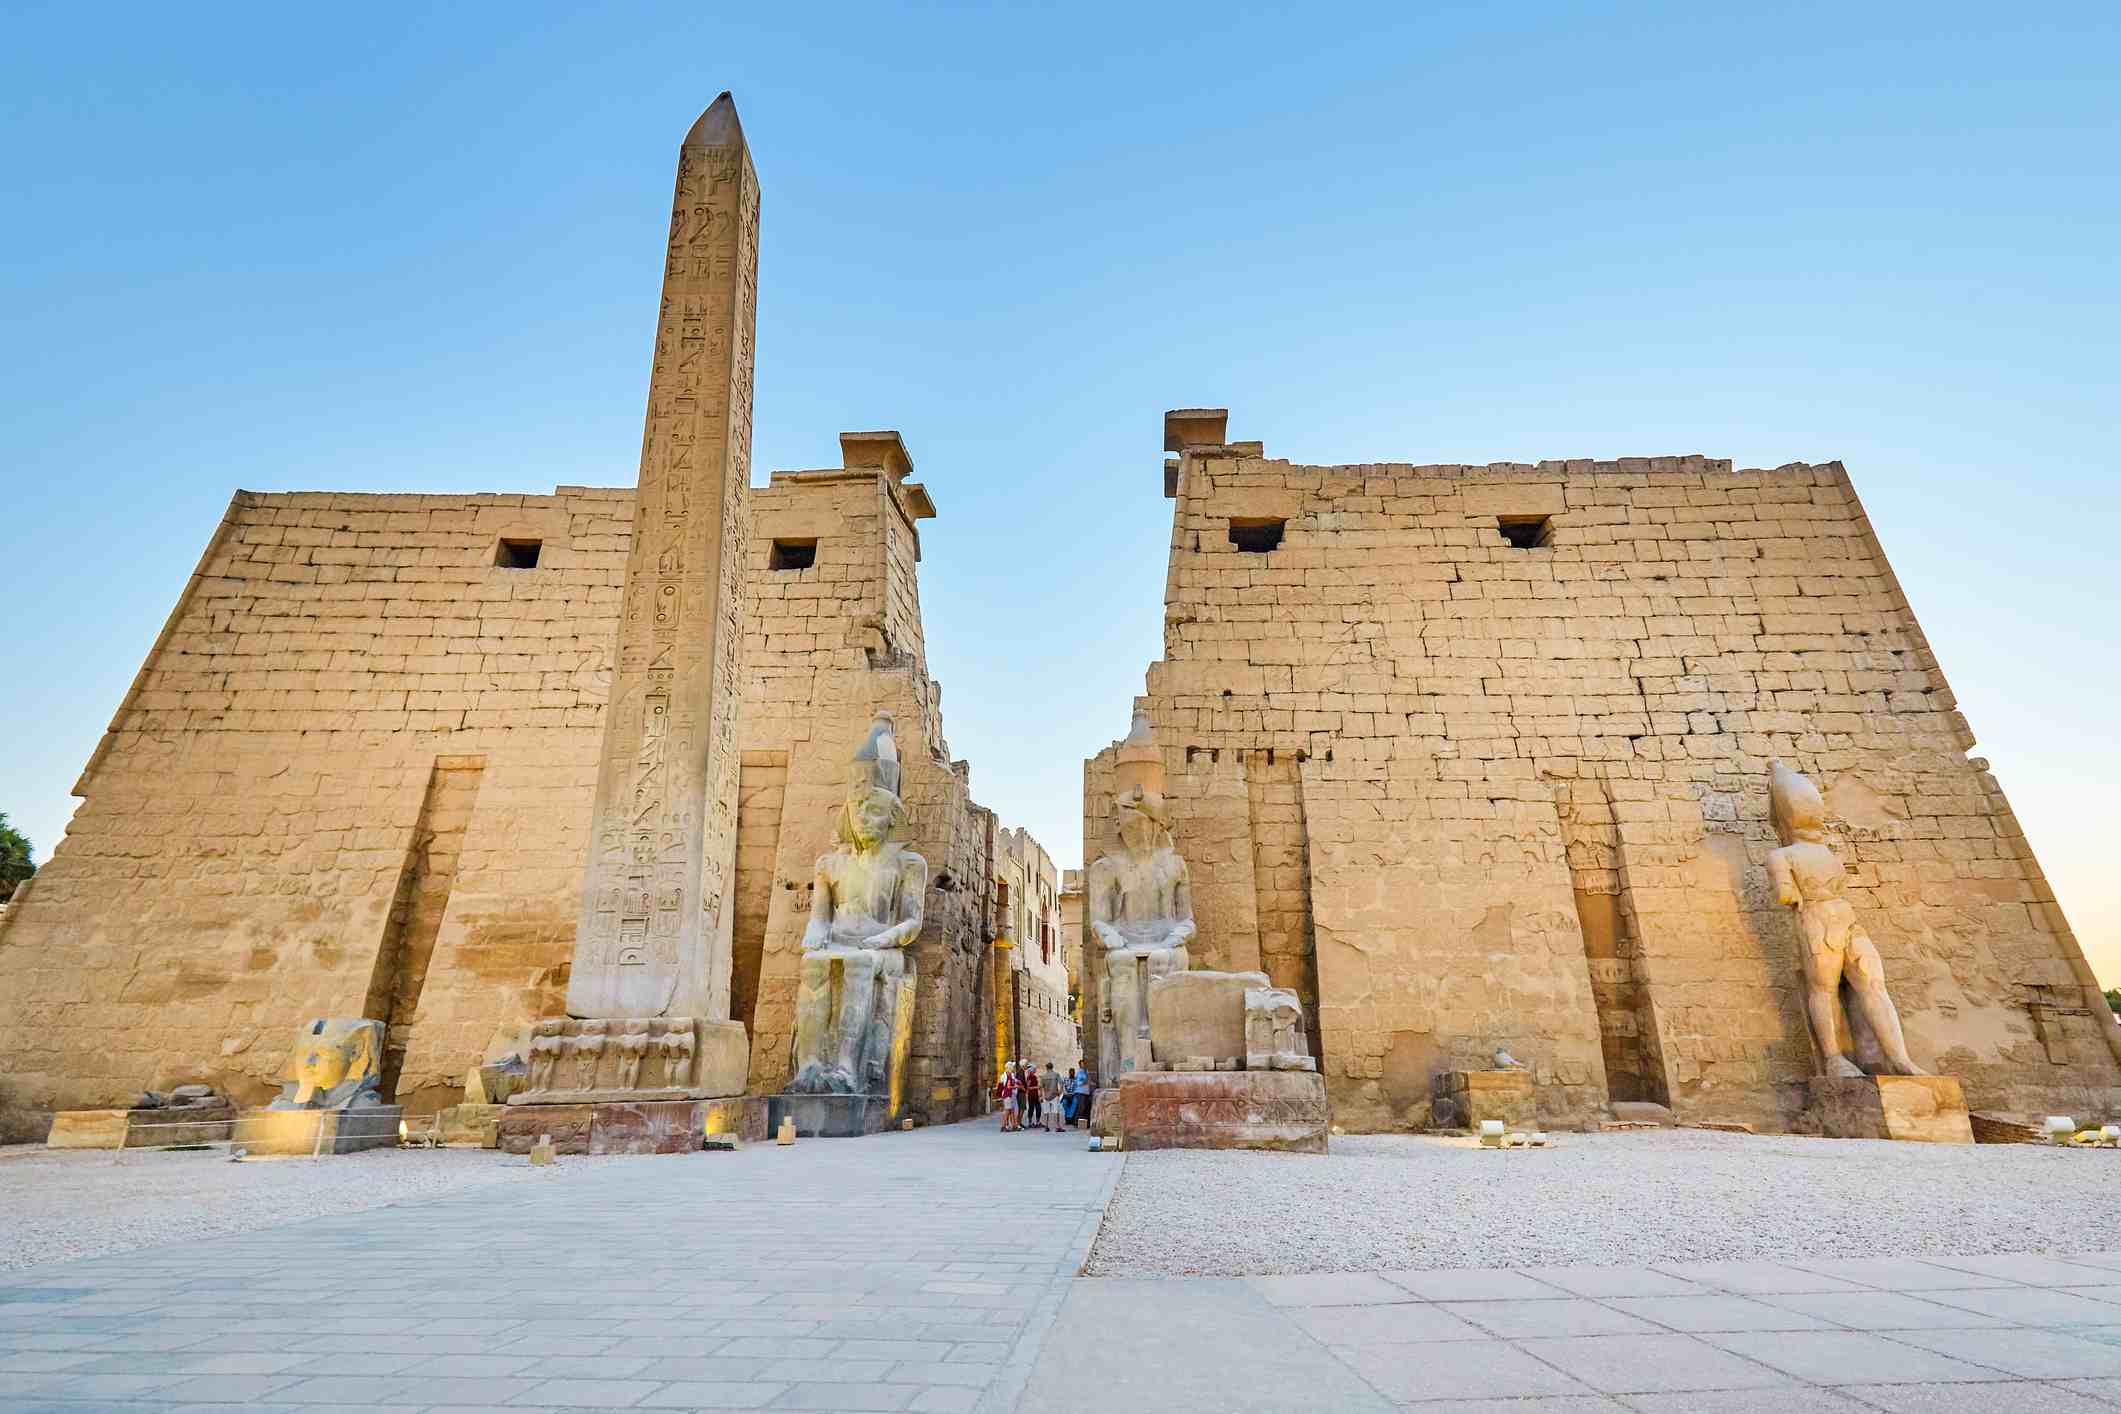 Temple of Luxor, Egypt